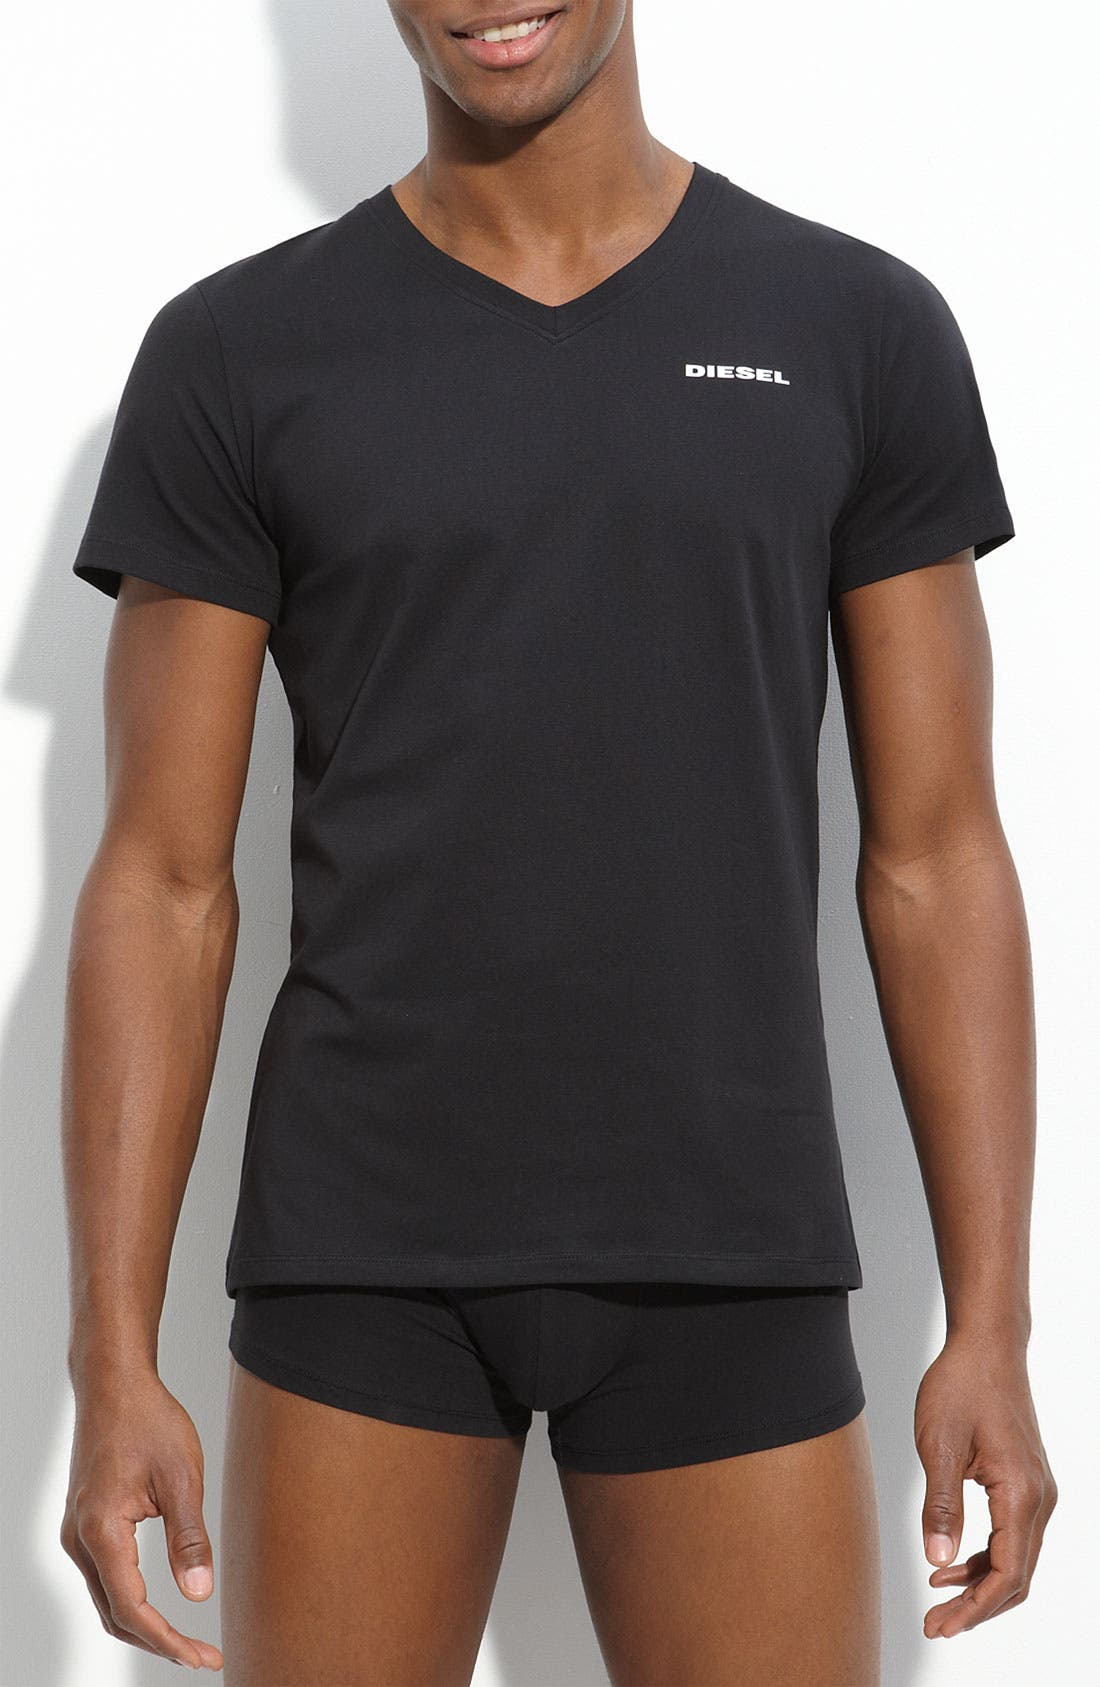 Alternate Image 1 Selected - DIESEL® Trim Fit V-Neck T-Shirt